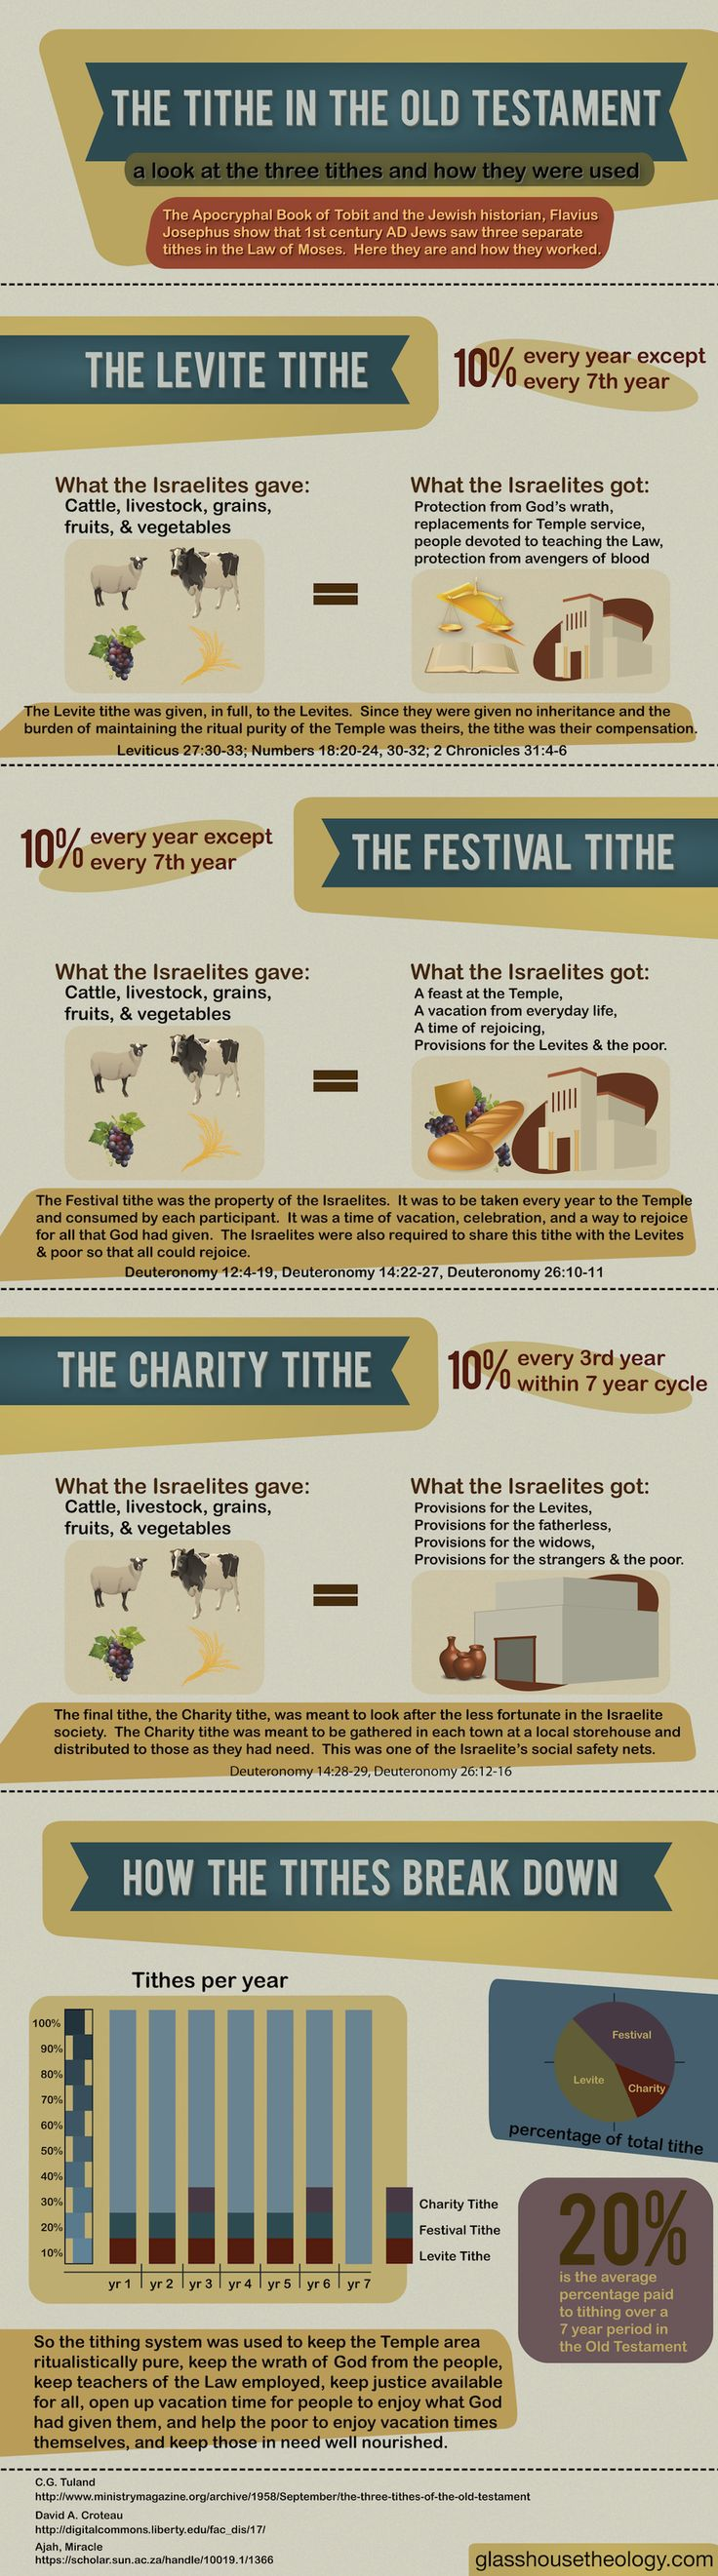 Excellent graphic work by Ken Mafli on the ancient Jewish tithe system.